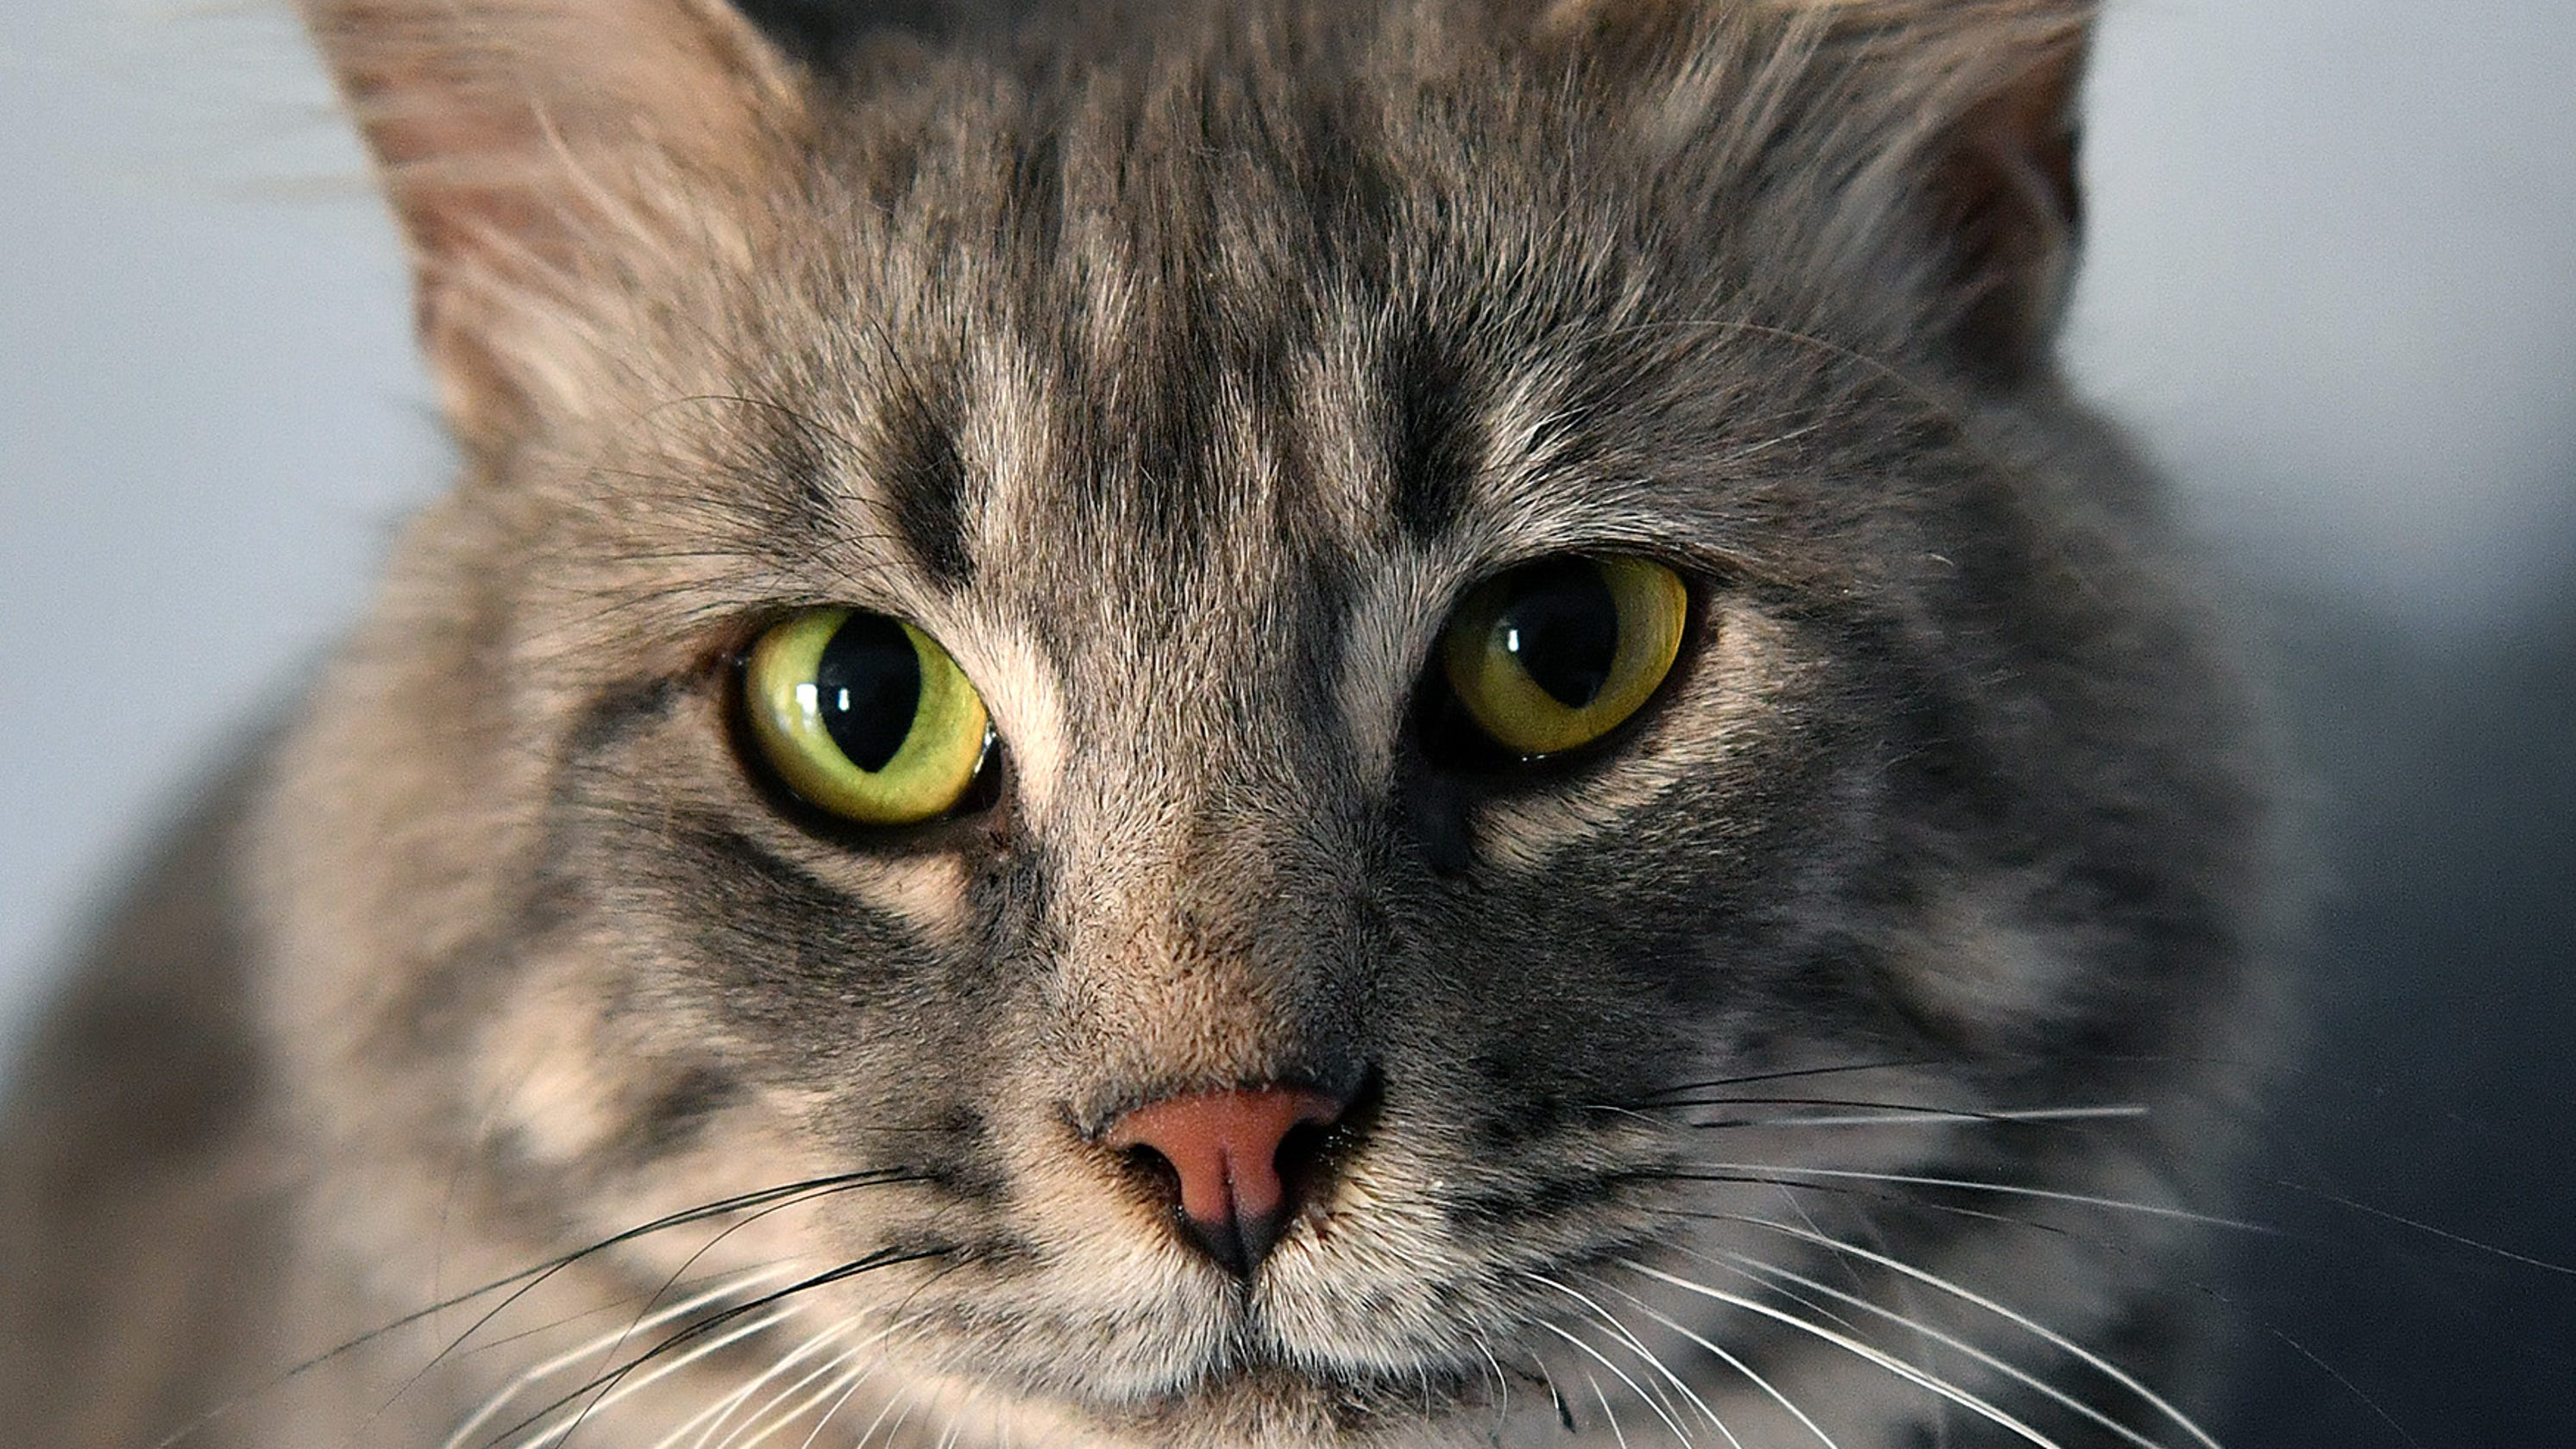 Cat owners reflect joyous day of naming their feline friends